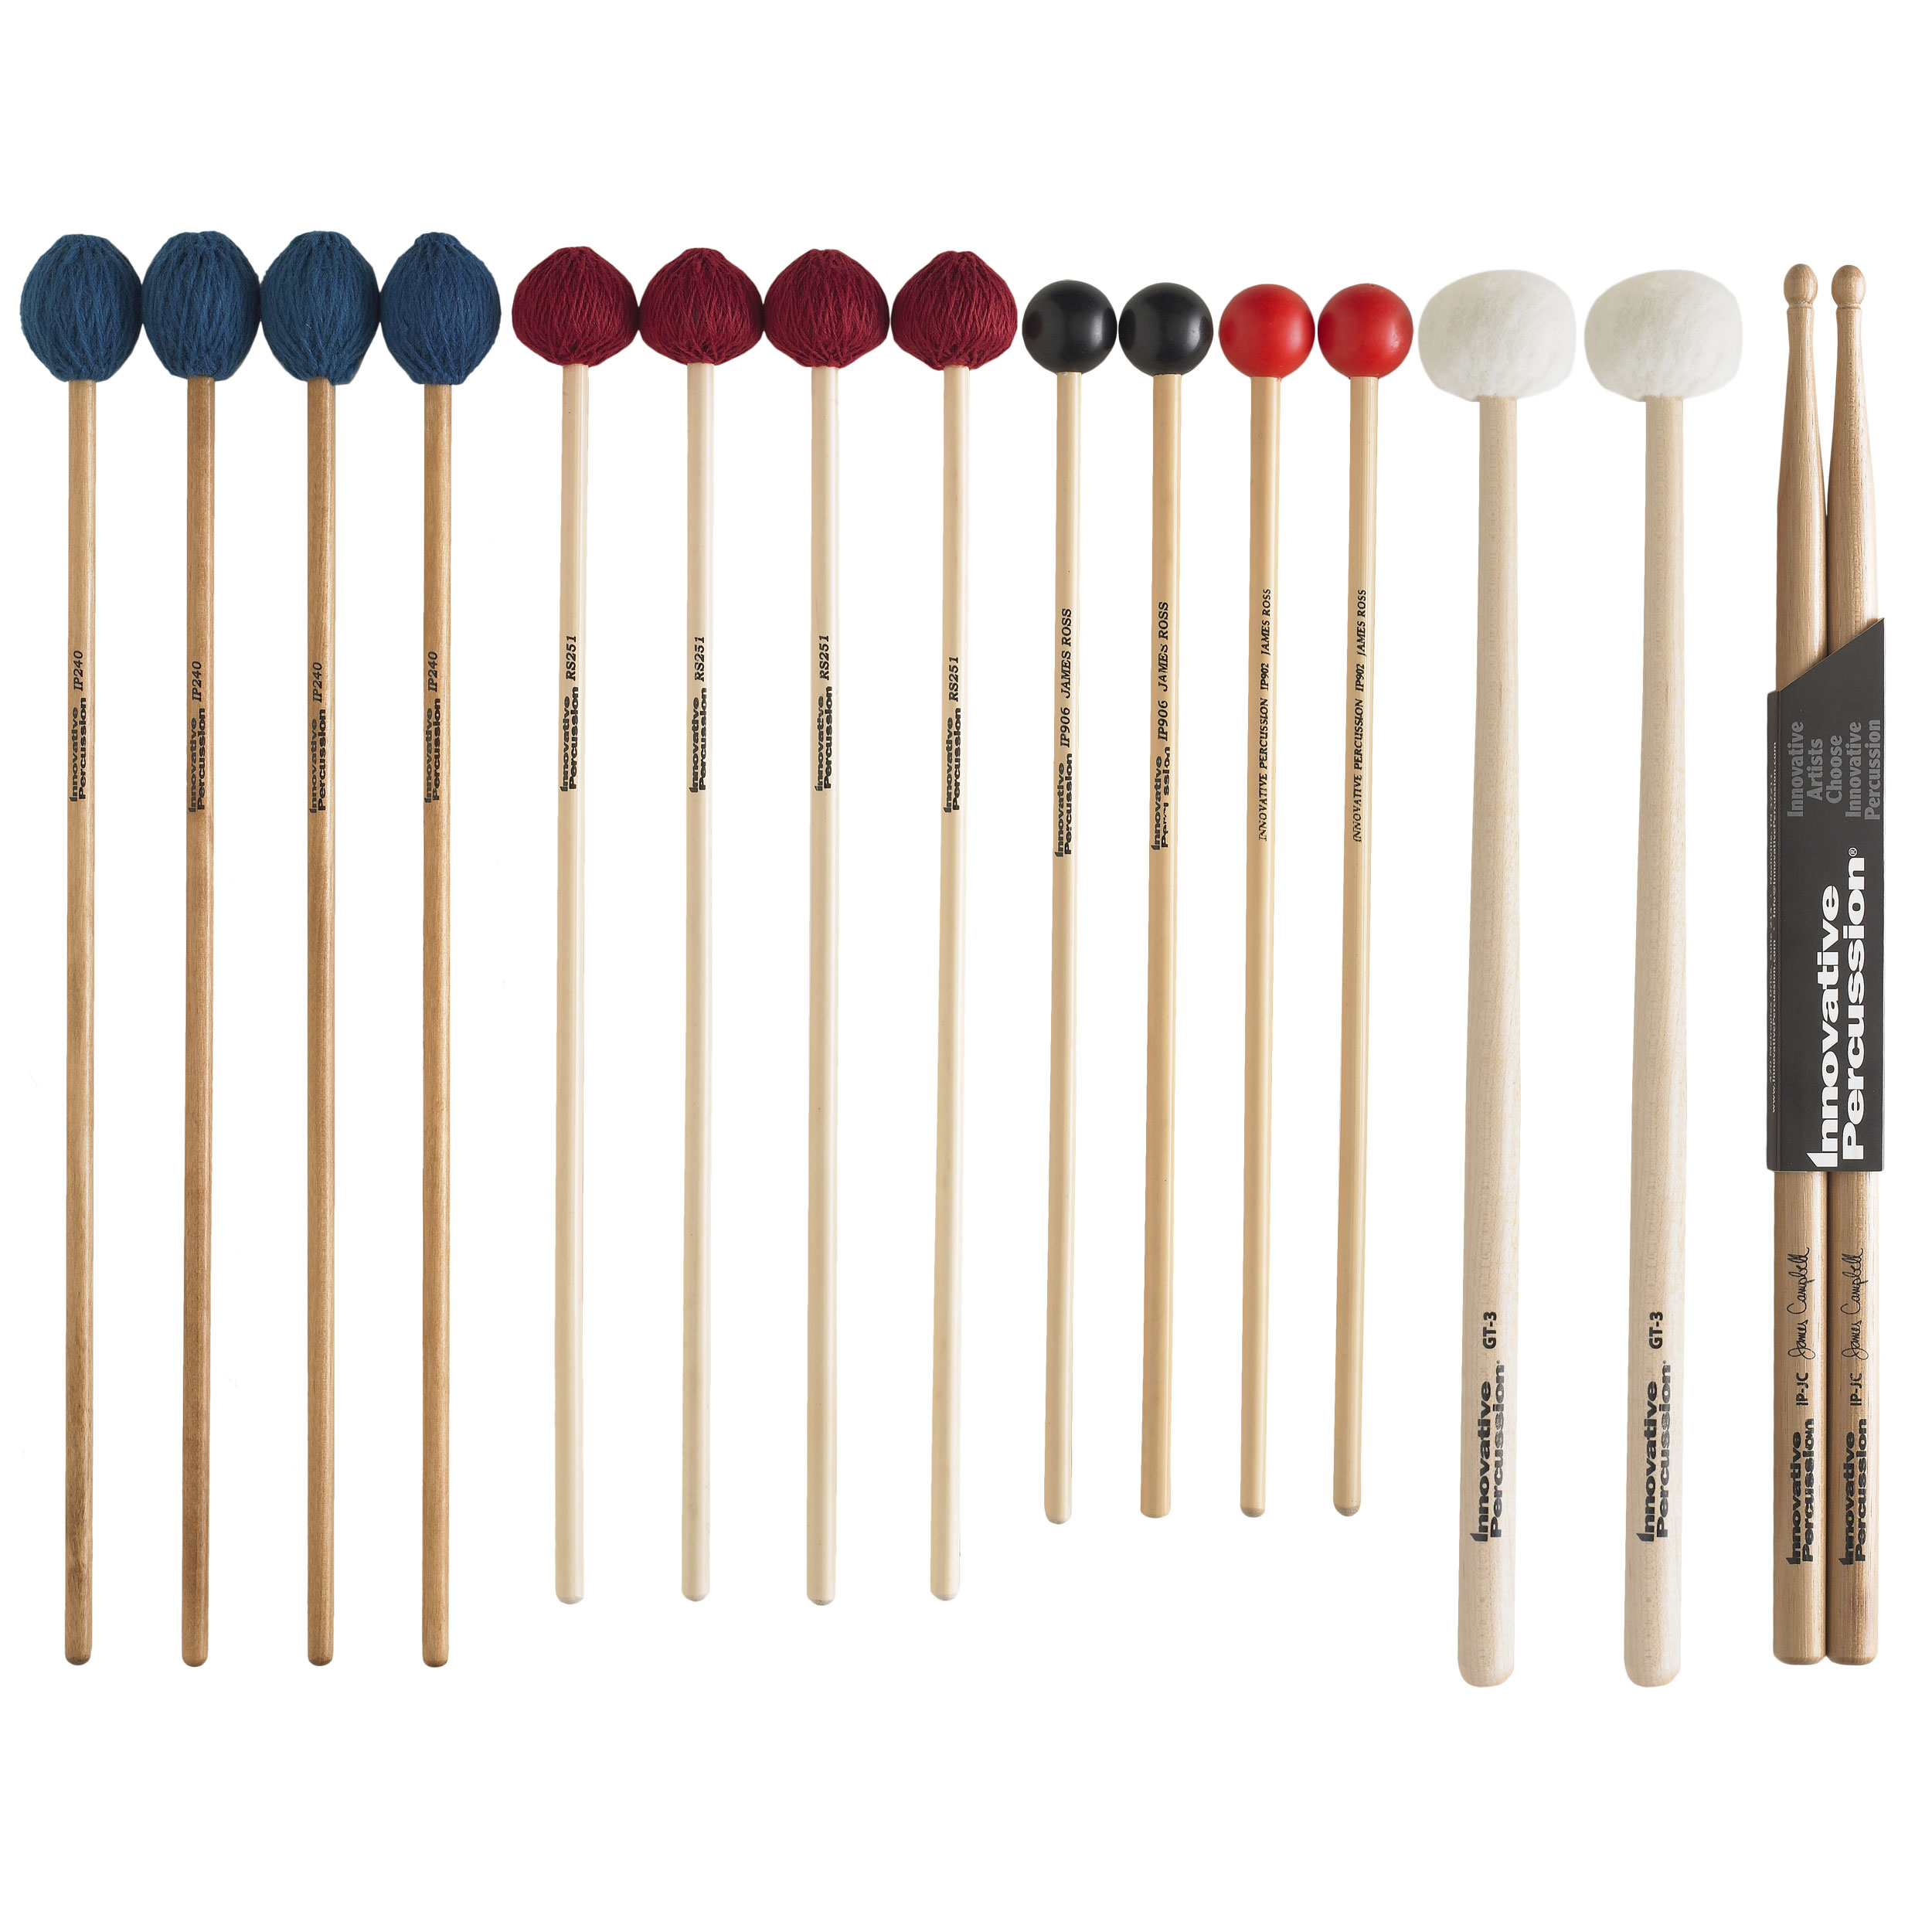 Innovative Percussion College Primer Stick Amp Mallet Pack